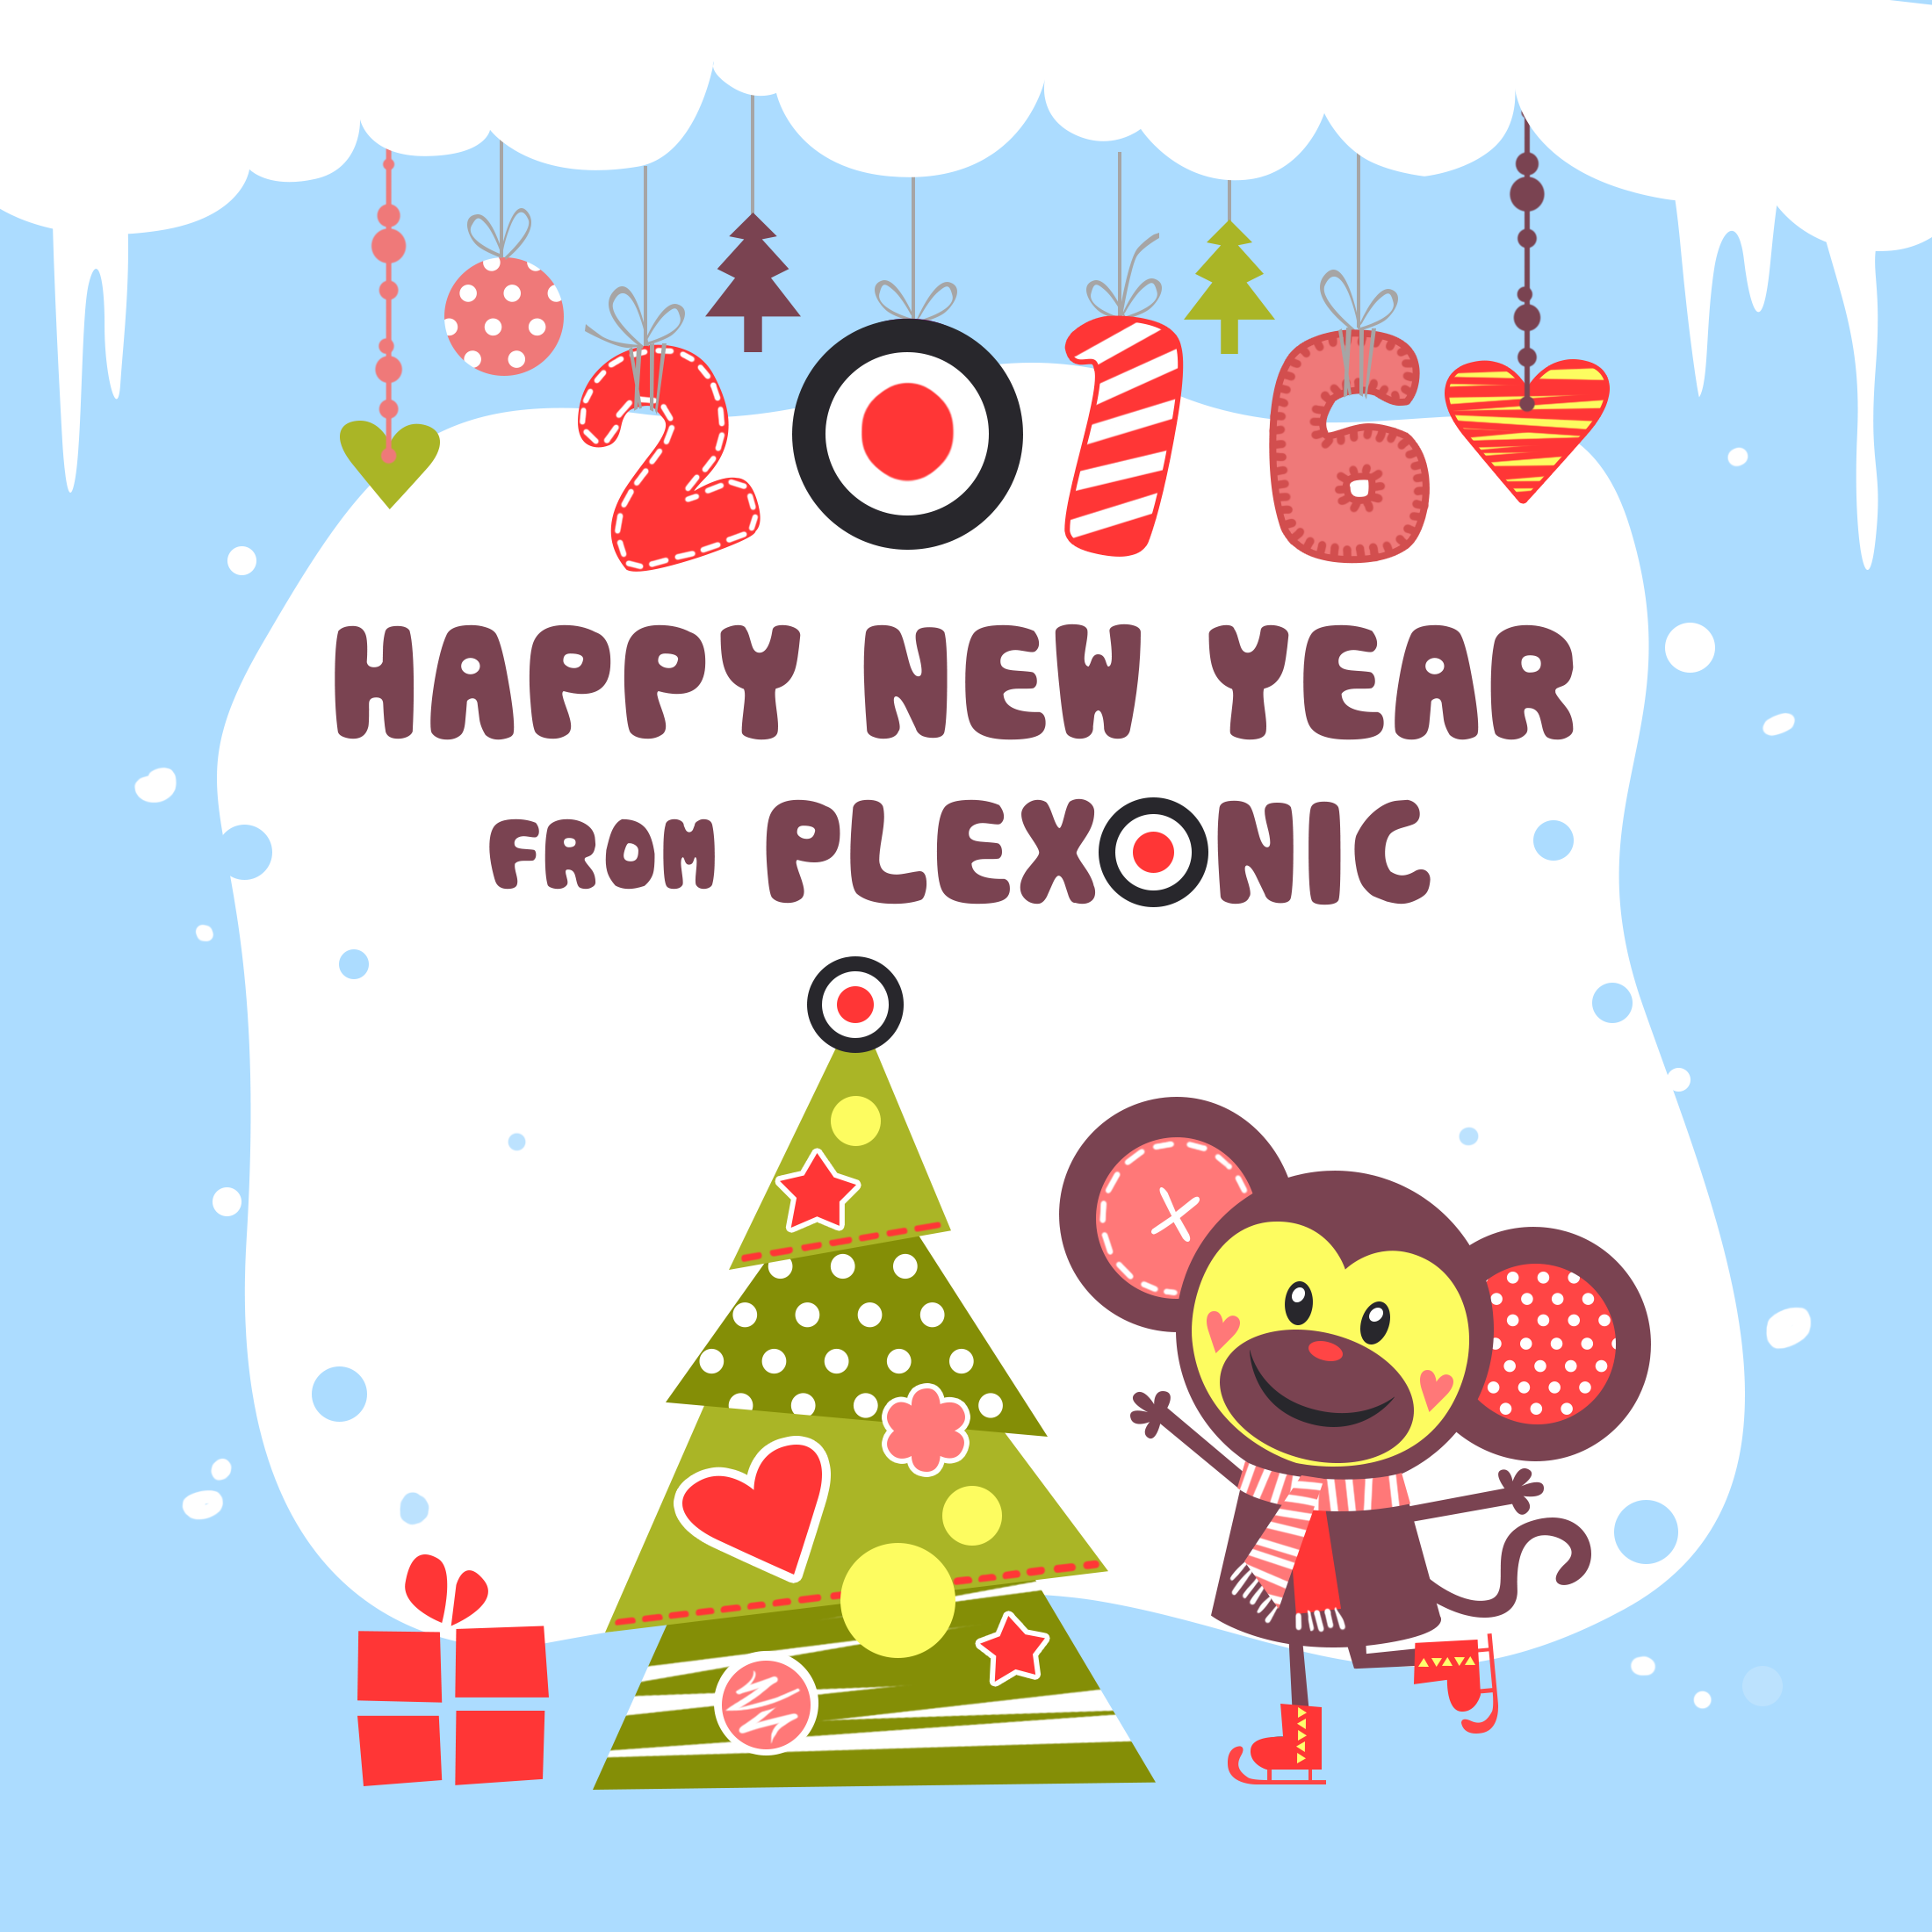 Greeting Card Happy New Year 2016 Plexonic Causal Games For Humans